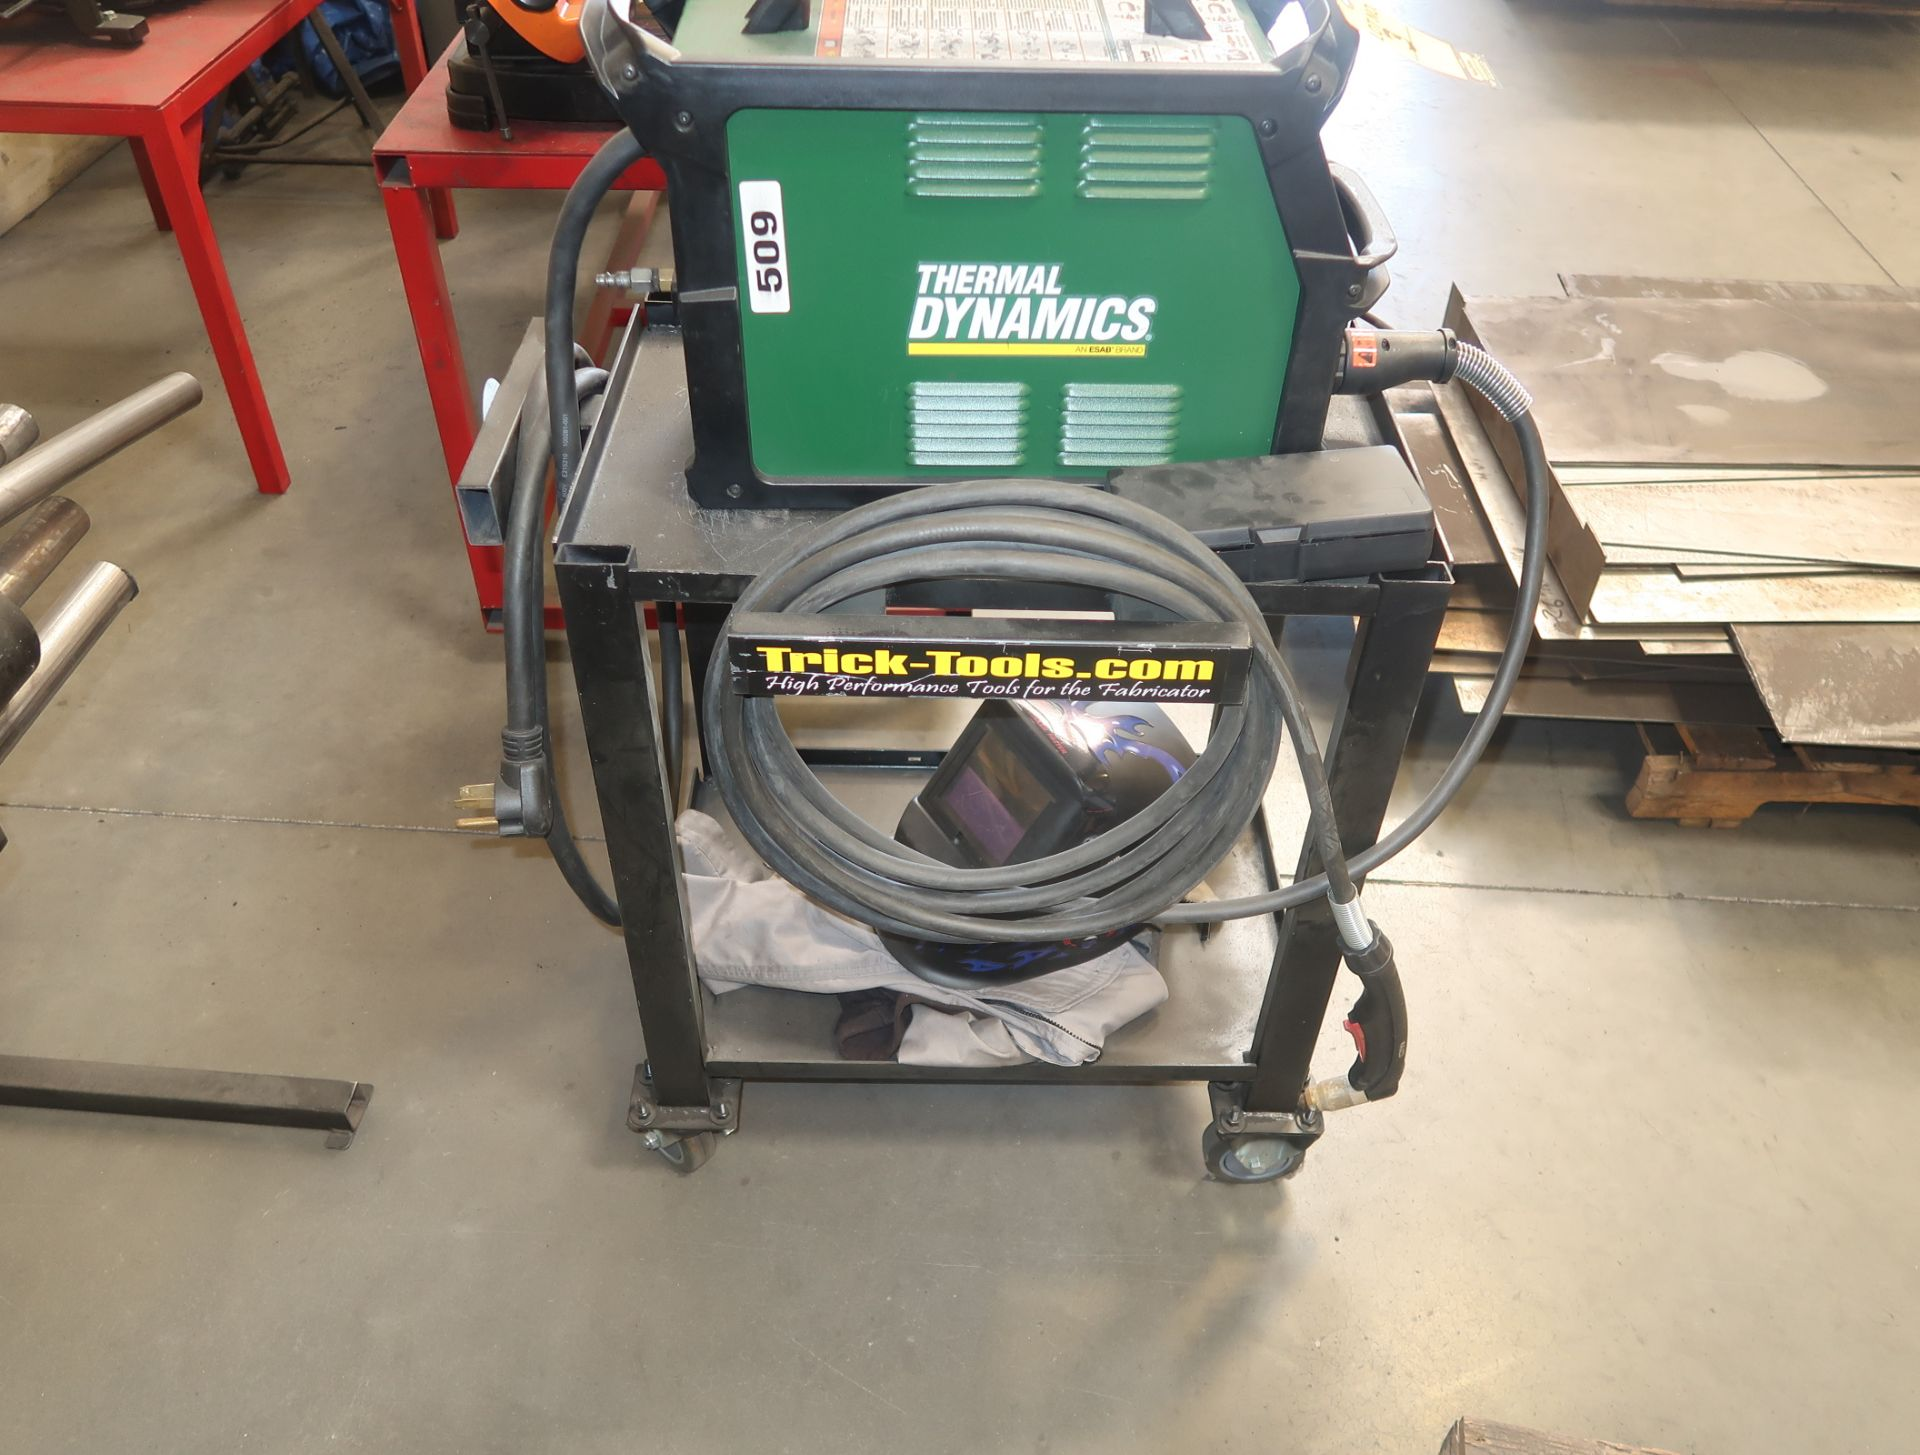 Lot 3 - THERMAL DYNAMICS CUTMASTER 60i PLASMA CUTTER W/ CART